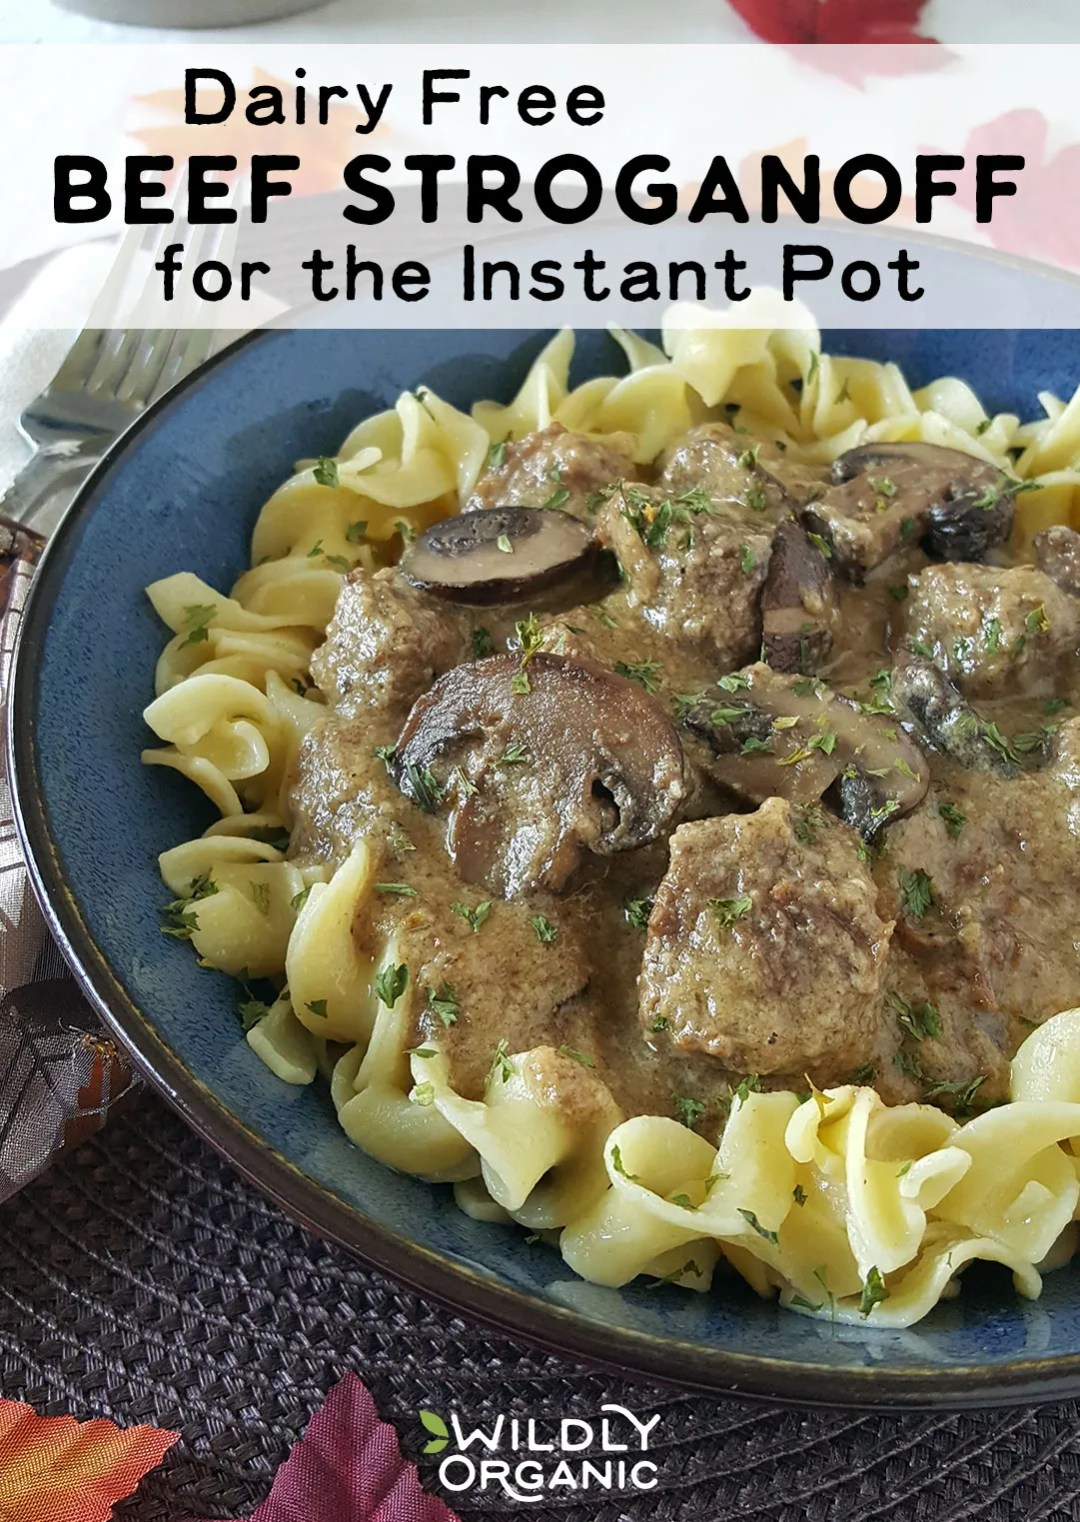 Photo of Dairy Free Beef Stroganoff | Traditionally, beef stroganoff is a creamy-sauced comfort food made with European smetana, or soured cream. Braising beef chunks low and slow in the oven results in beautifully tender beef -- IF you have the time. If you can't have dairy and don't have that kind of time, I've got good news for you! This Dairy Free Beef Stroganoff for the Instant Pot is just what you need.